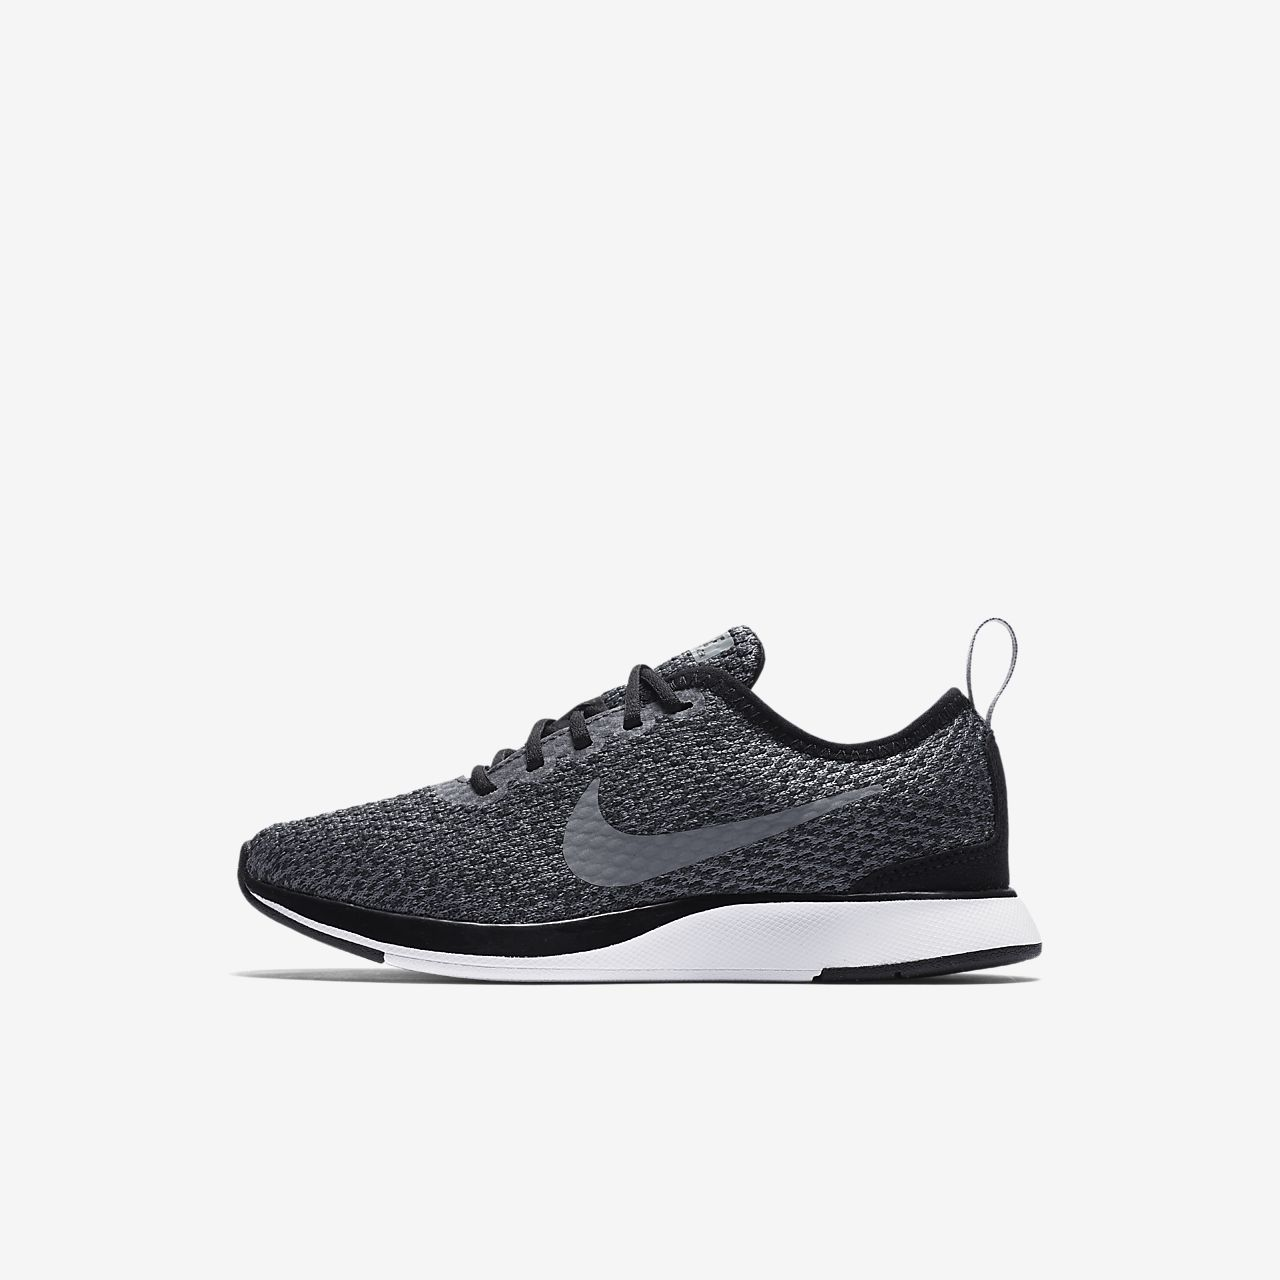 at Størrelse 5 C increasing Nike Sko x68wqT4BW4 Gutter 11 Tgzq0w